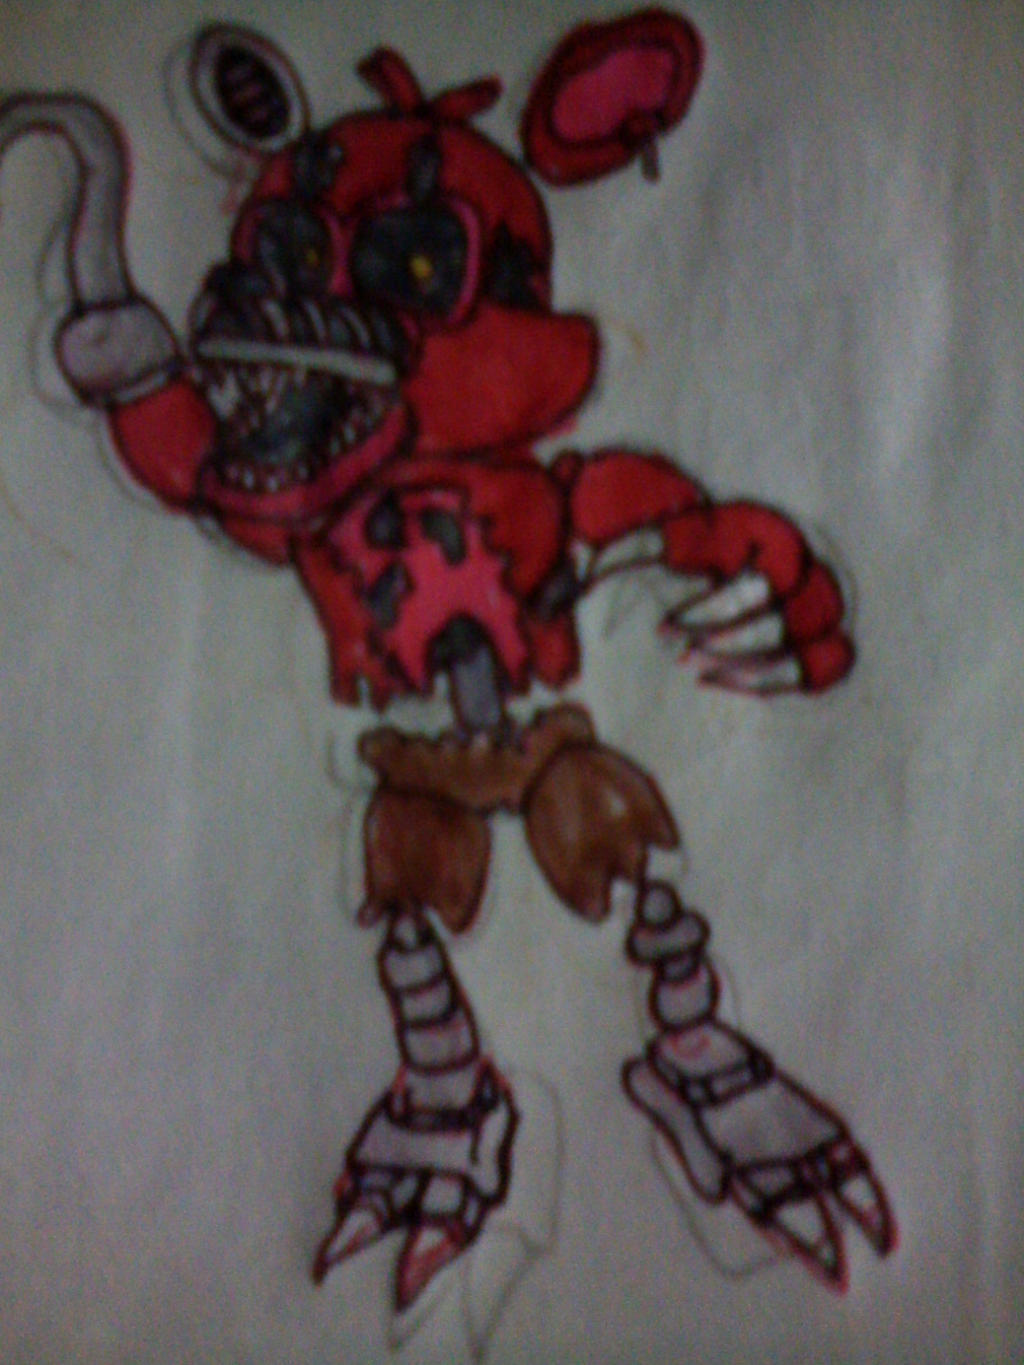 This is an image of Sweet Nightmare Foxy Drawing